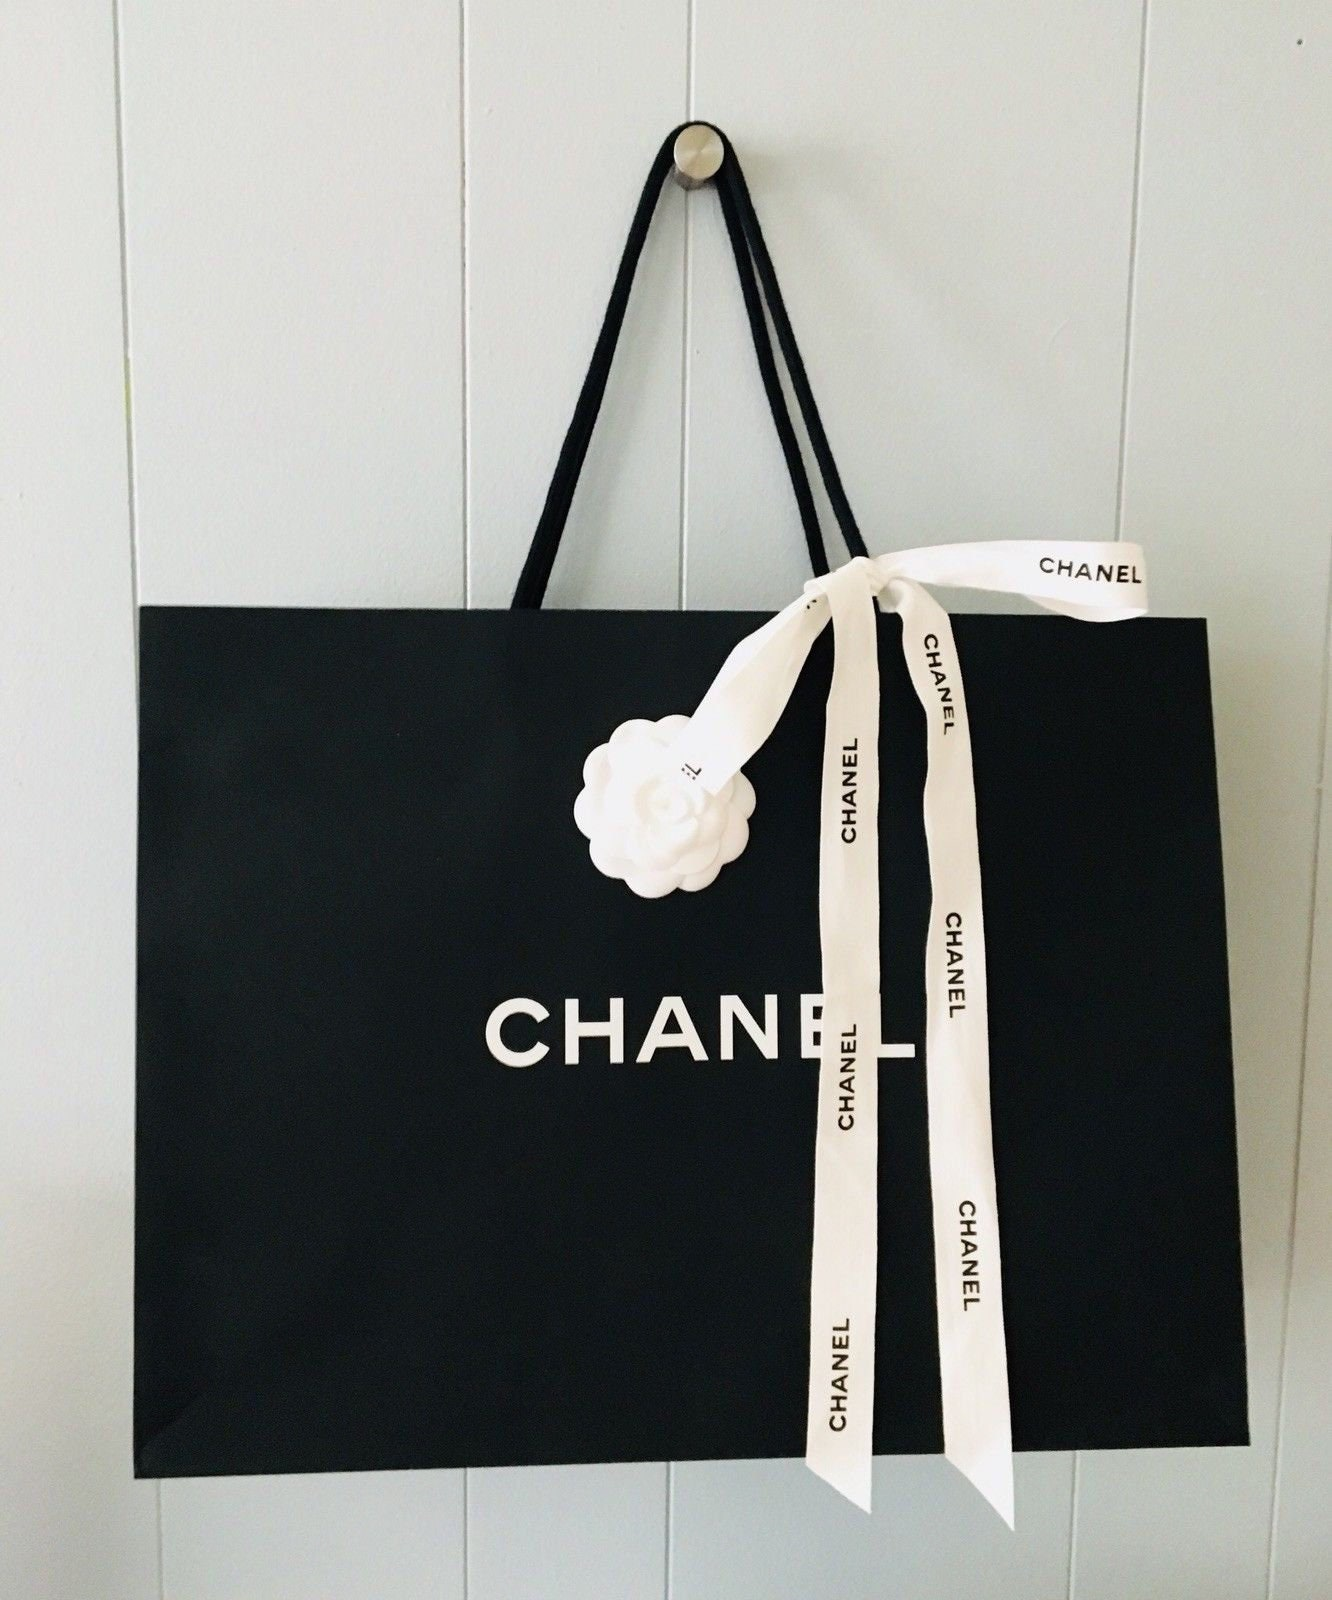 3cfaf2ffd4ed Chanel Shopping Gift Tote Bags with Camellia Flower and Chanel | Etsy